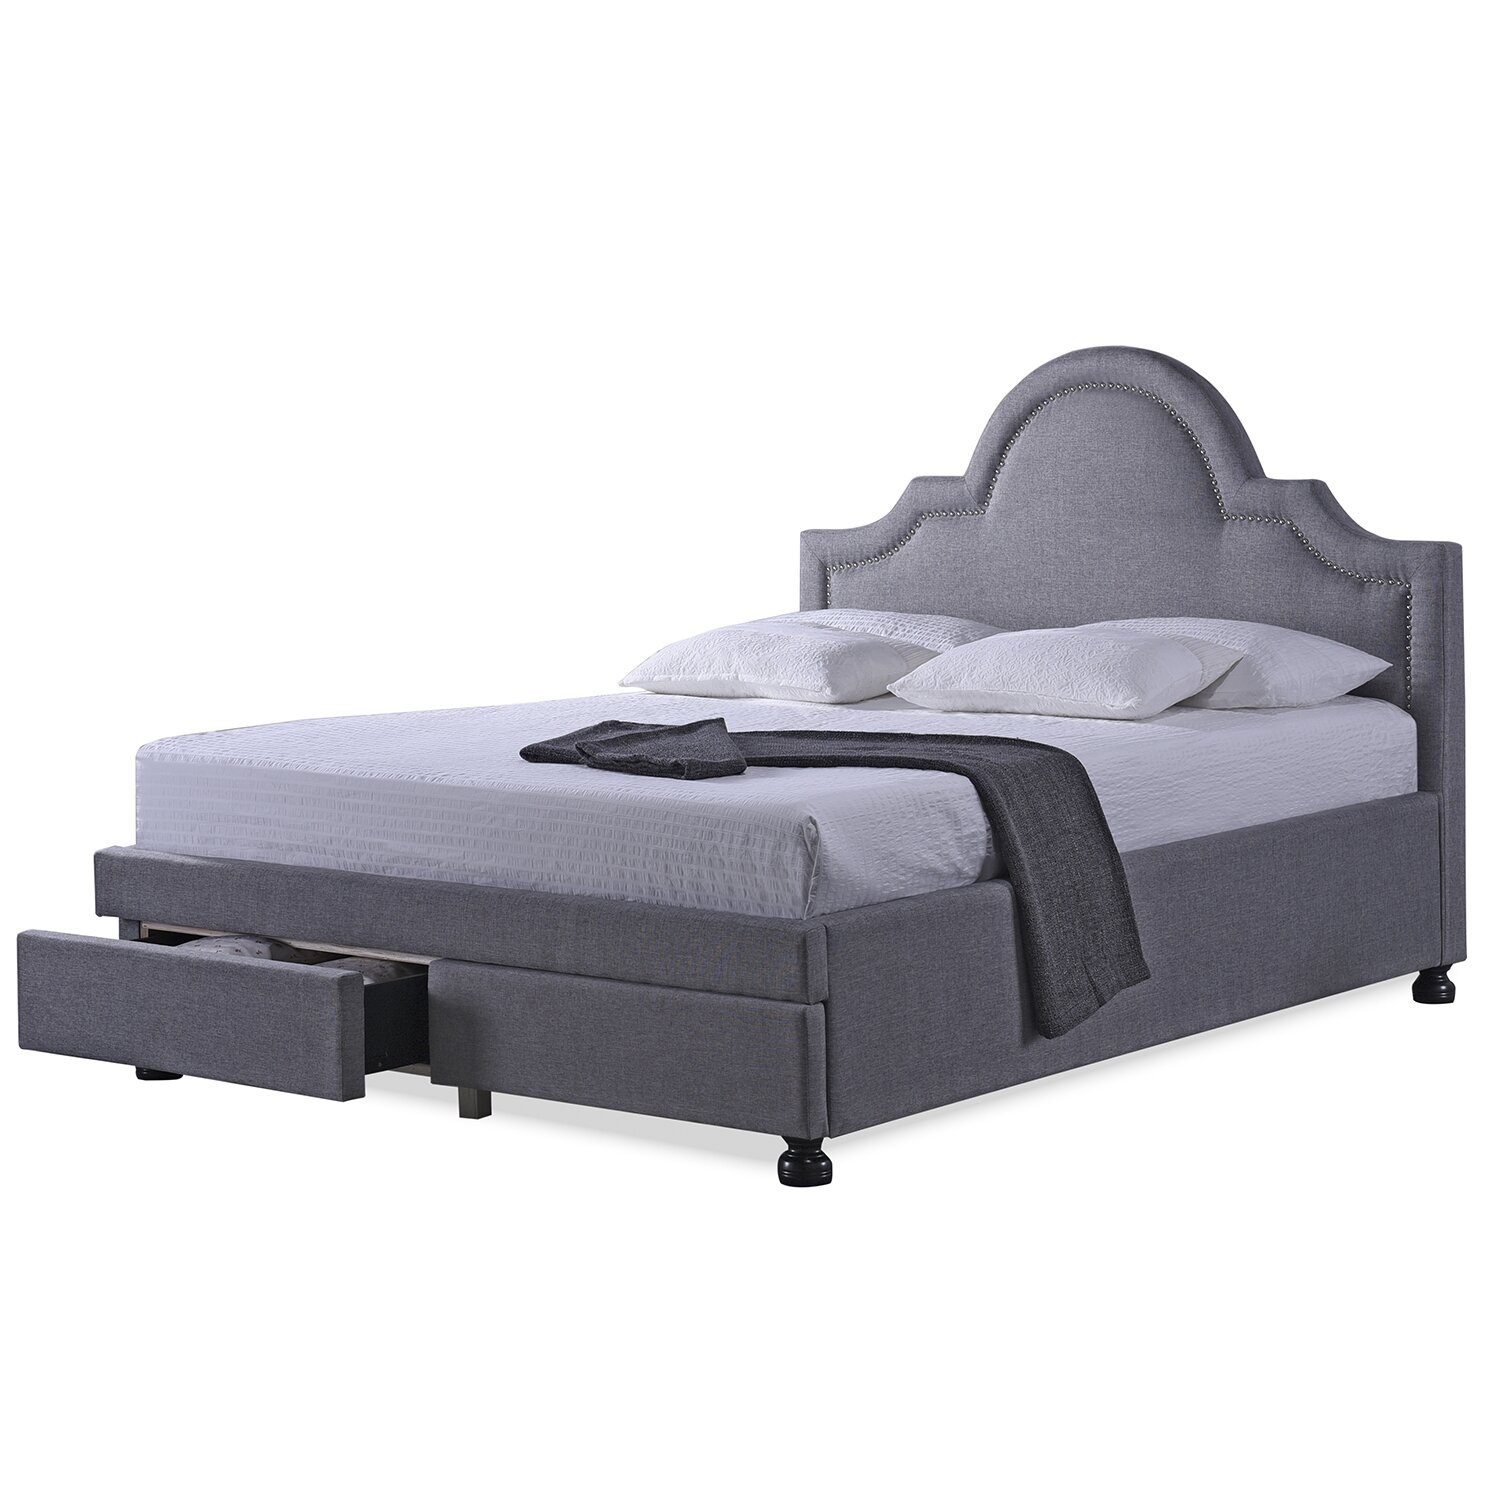 wholesale interiors king upholstered storage platform bed reviews wayfair. Black Bedroom Furniture Sets. Home Design Ideas